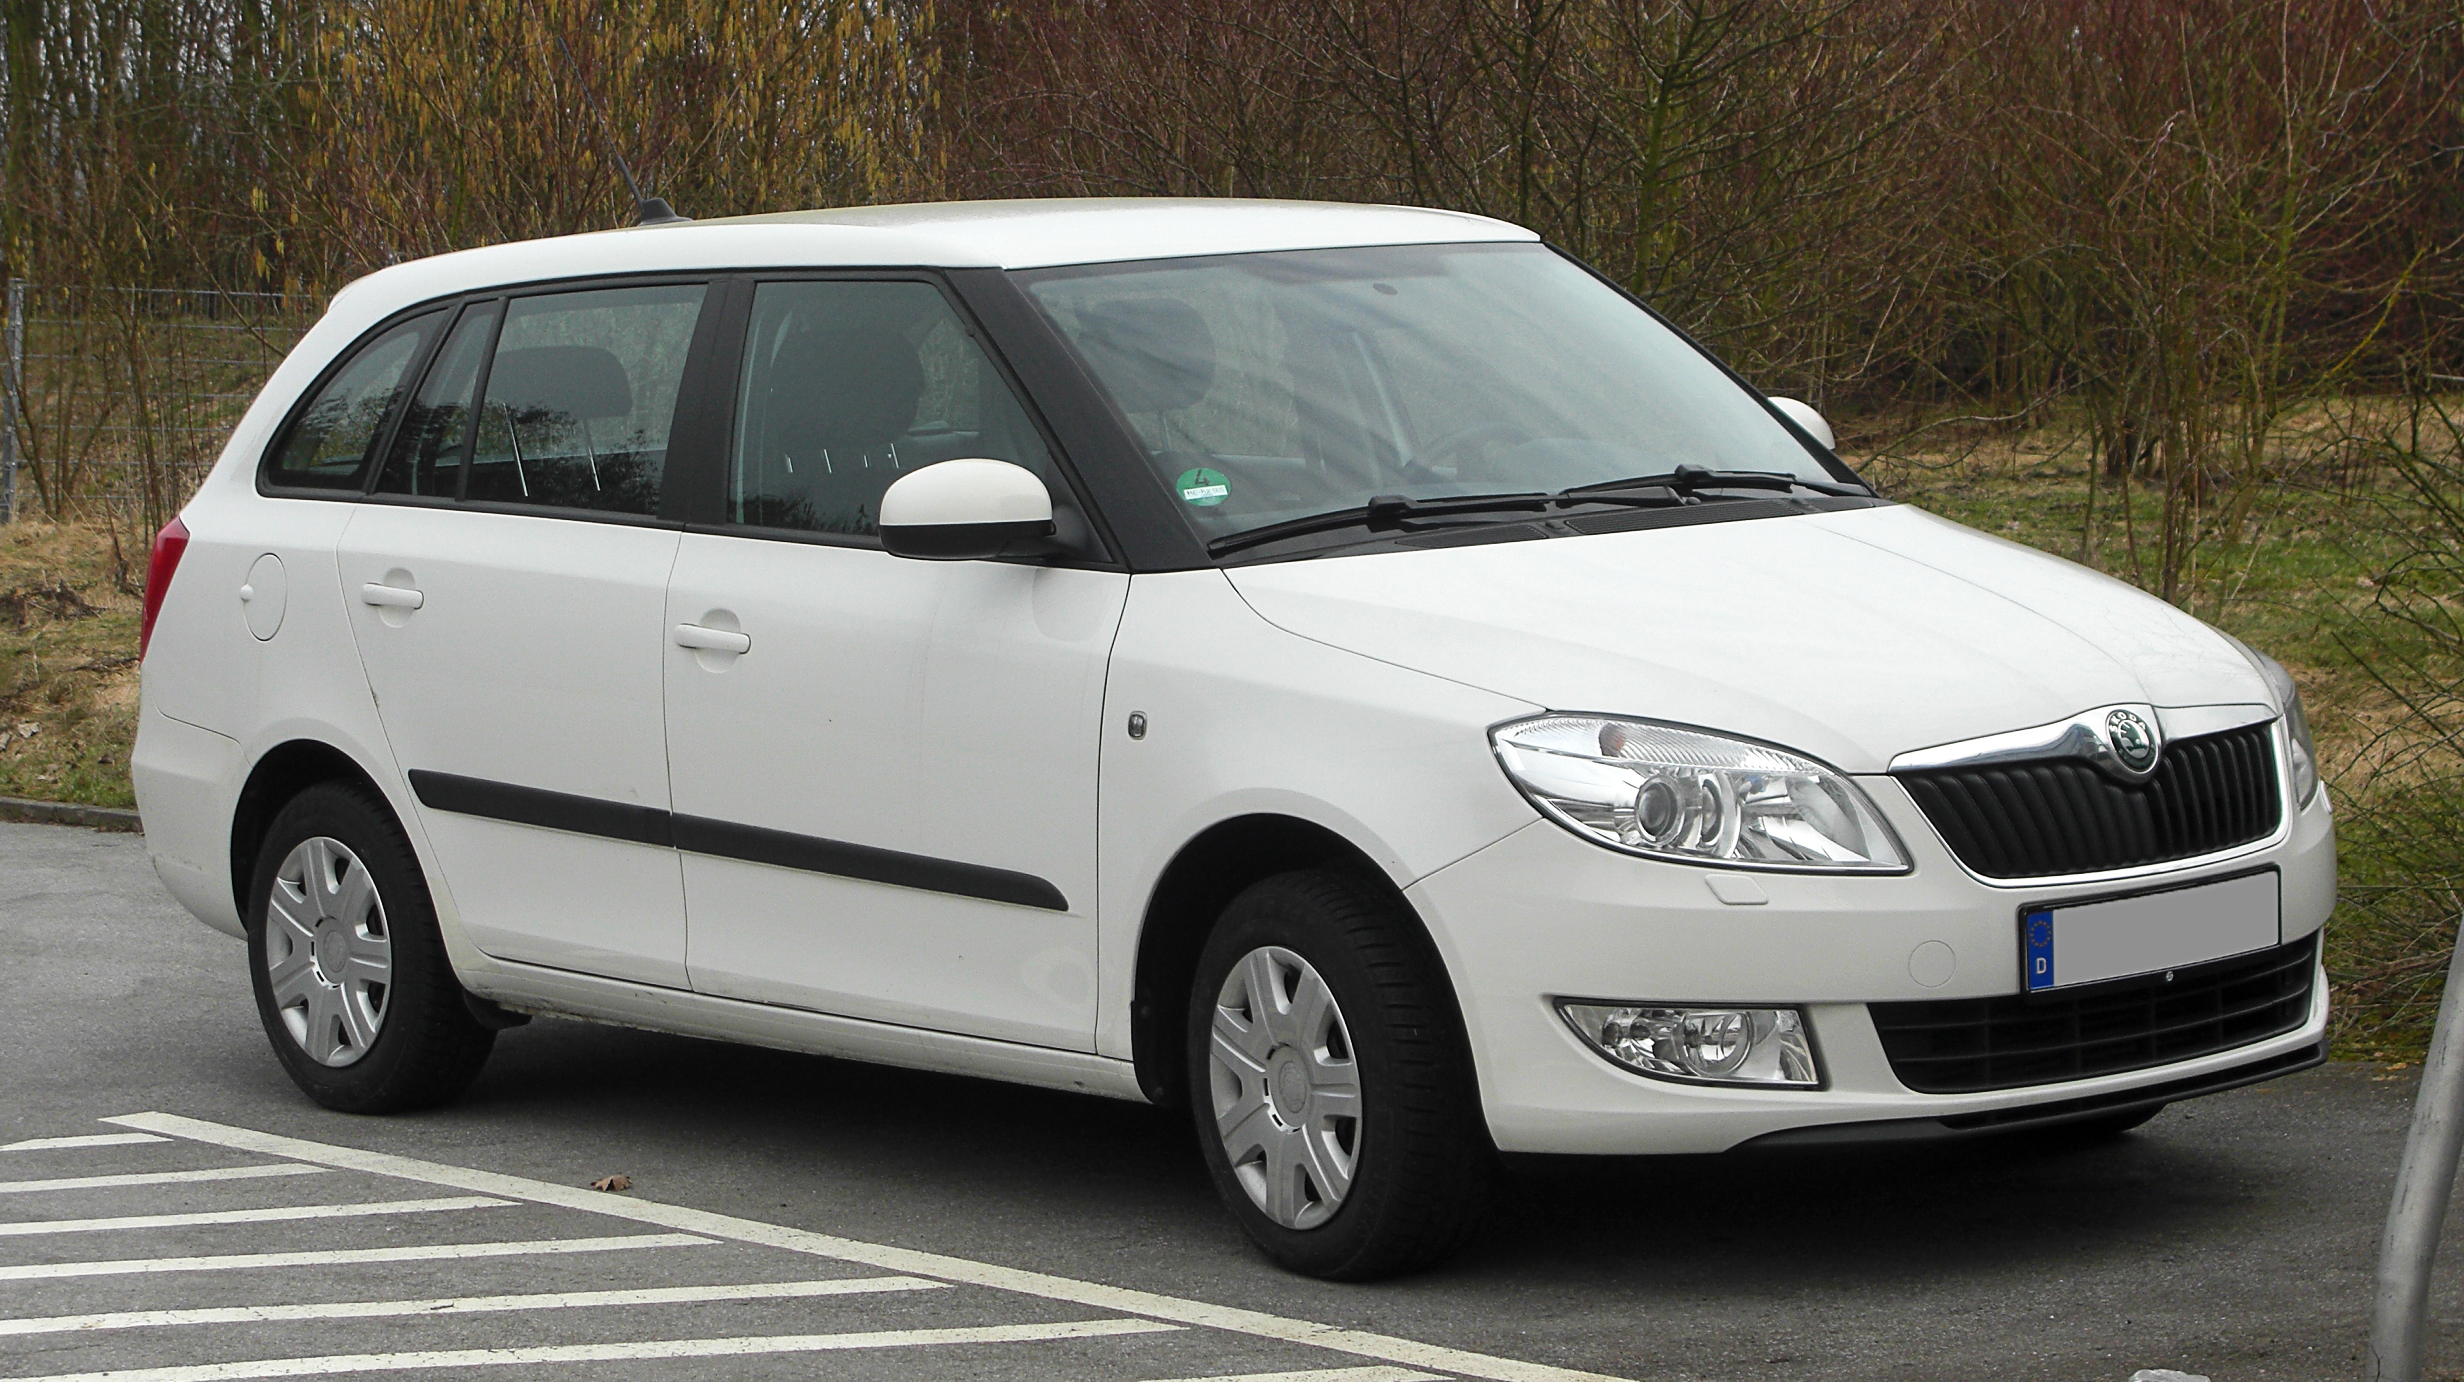 2011 skoda fabia ii pictures information and specs auto. Black Bedroom Furniture Sets. Home Design Ideas